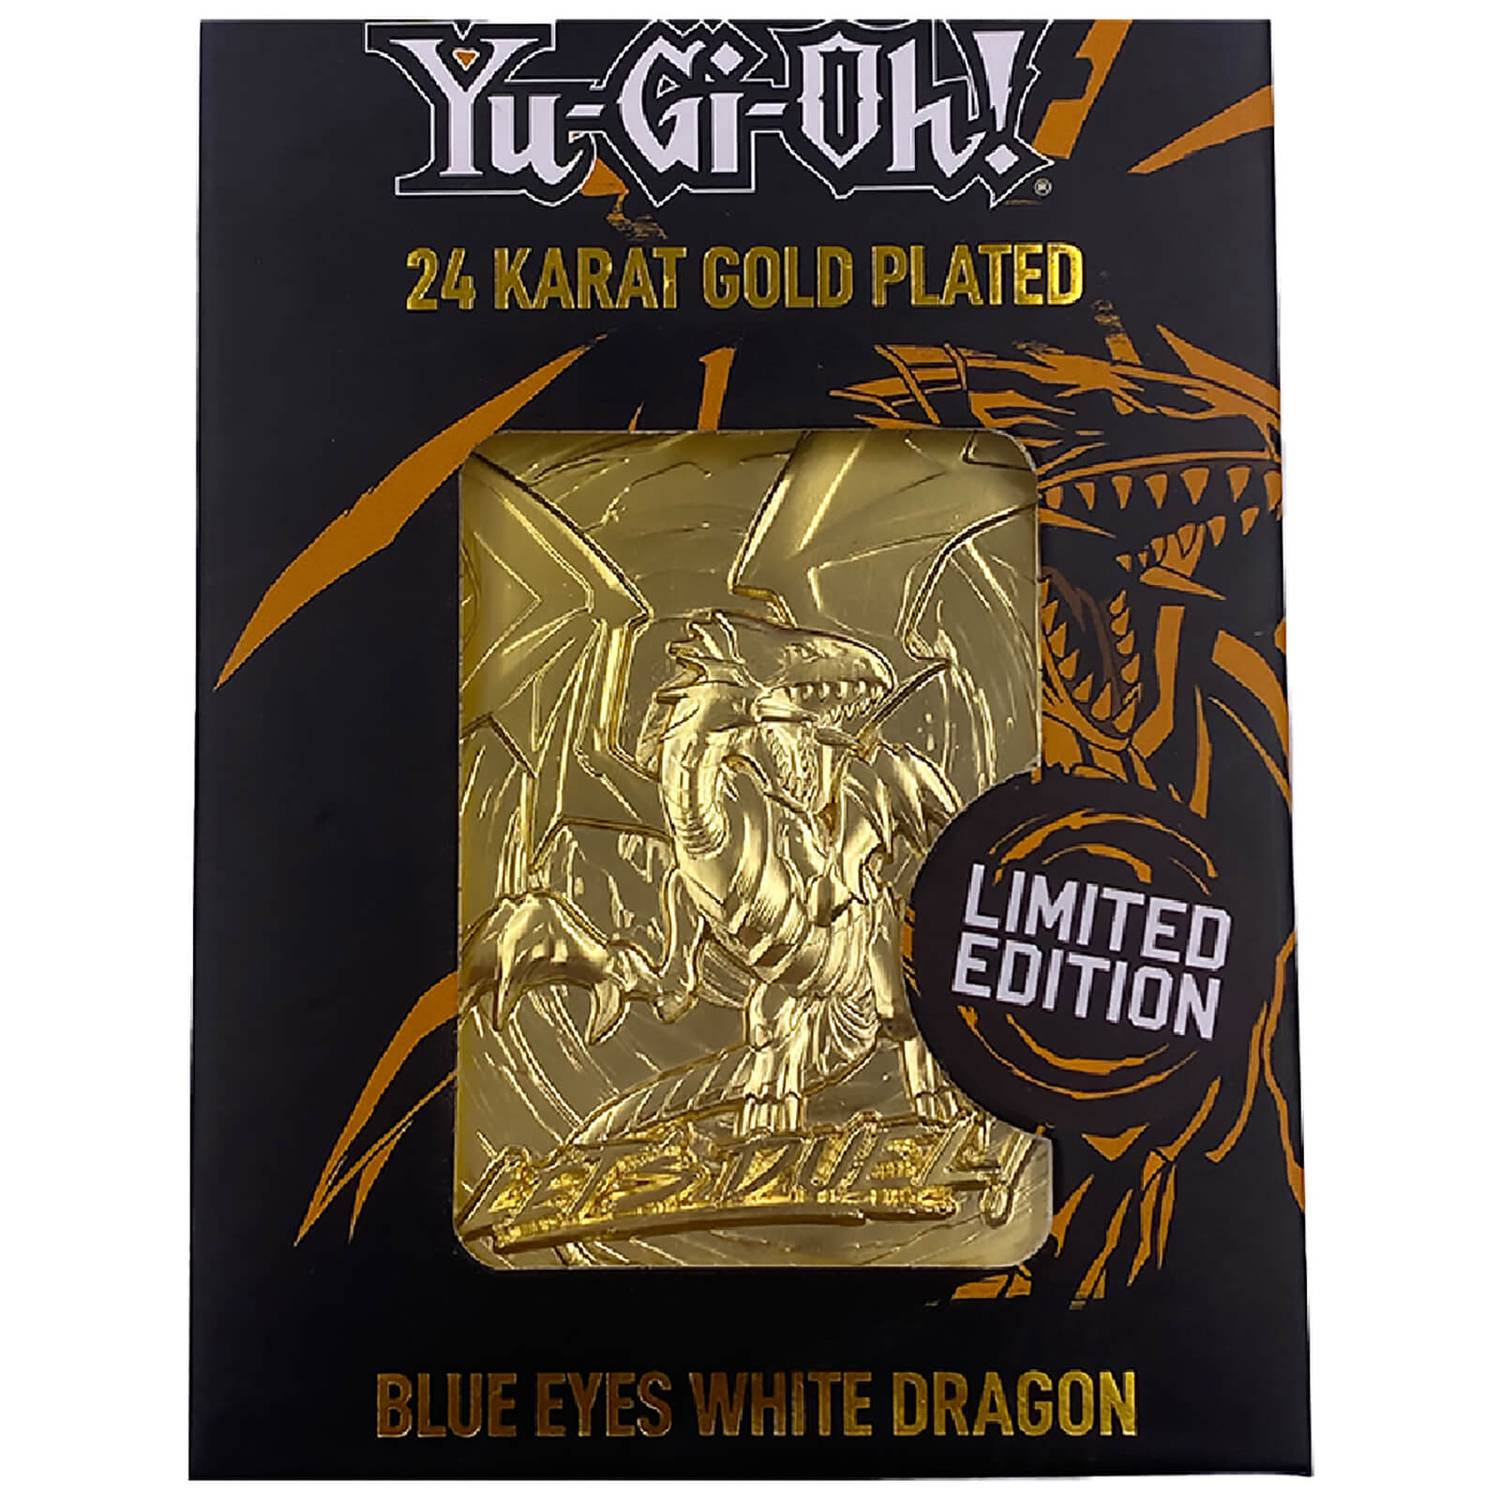 Gold plated blue eyes white dragon japanese best selling steroids